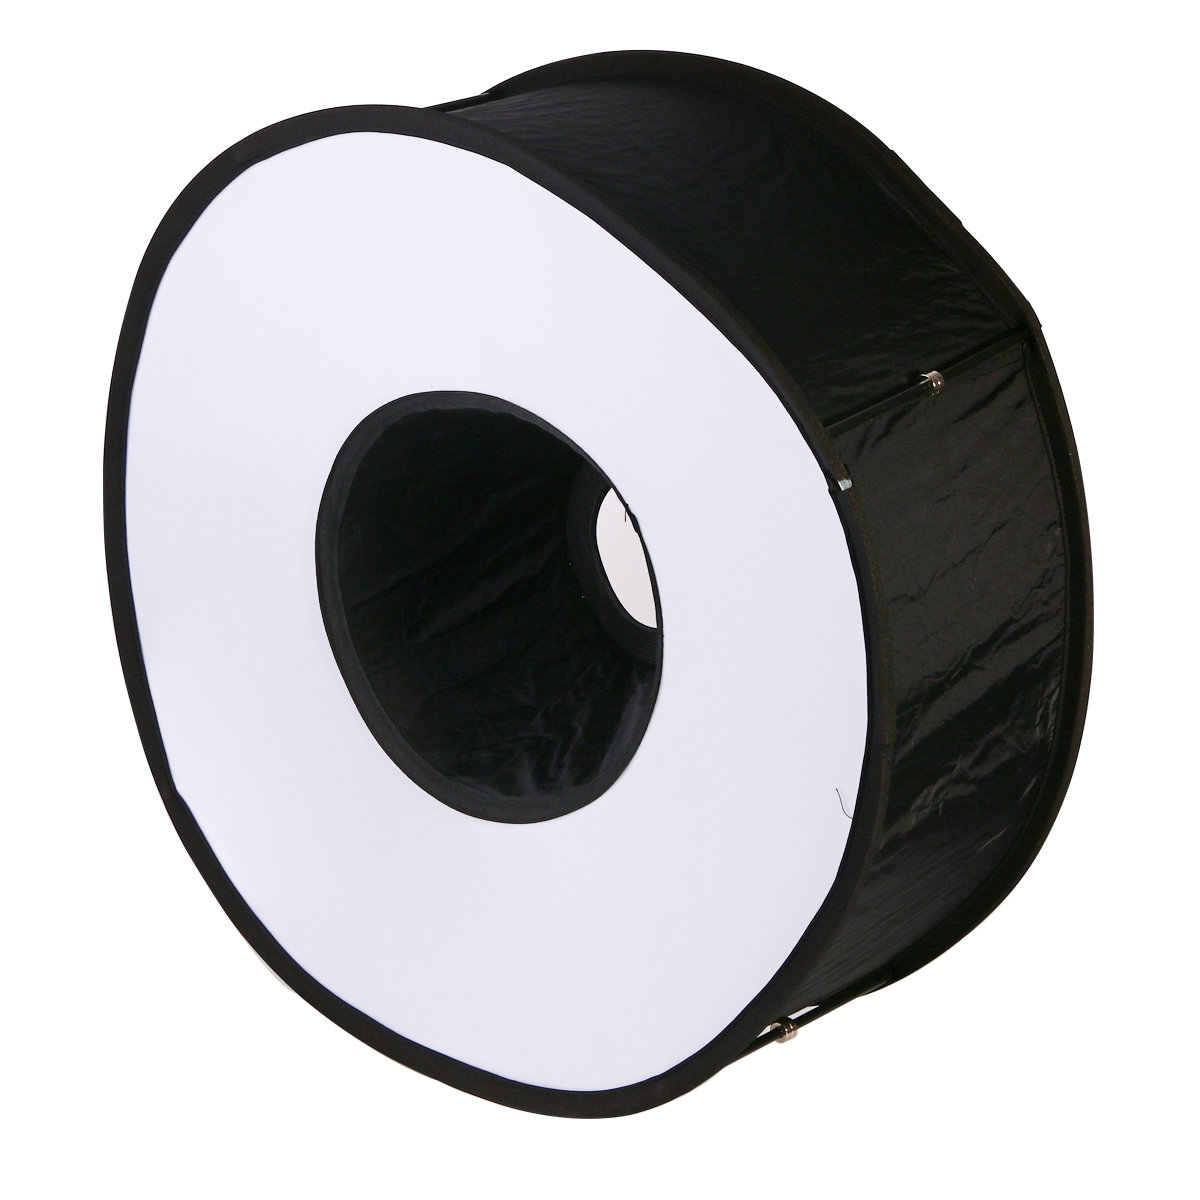 Speedlight Ring Round Flash Diffuser Softbox for Canon